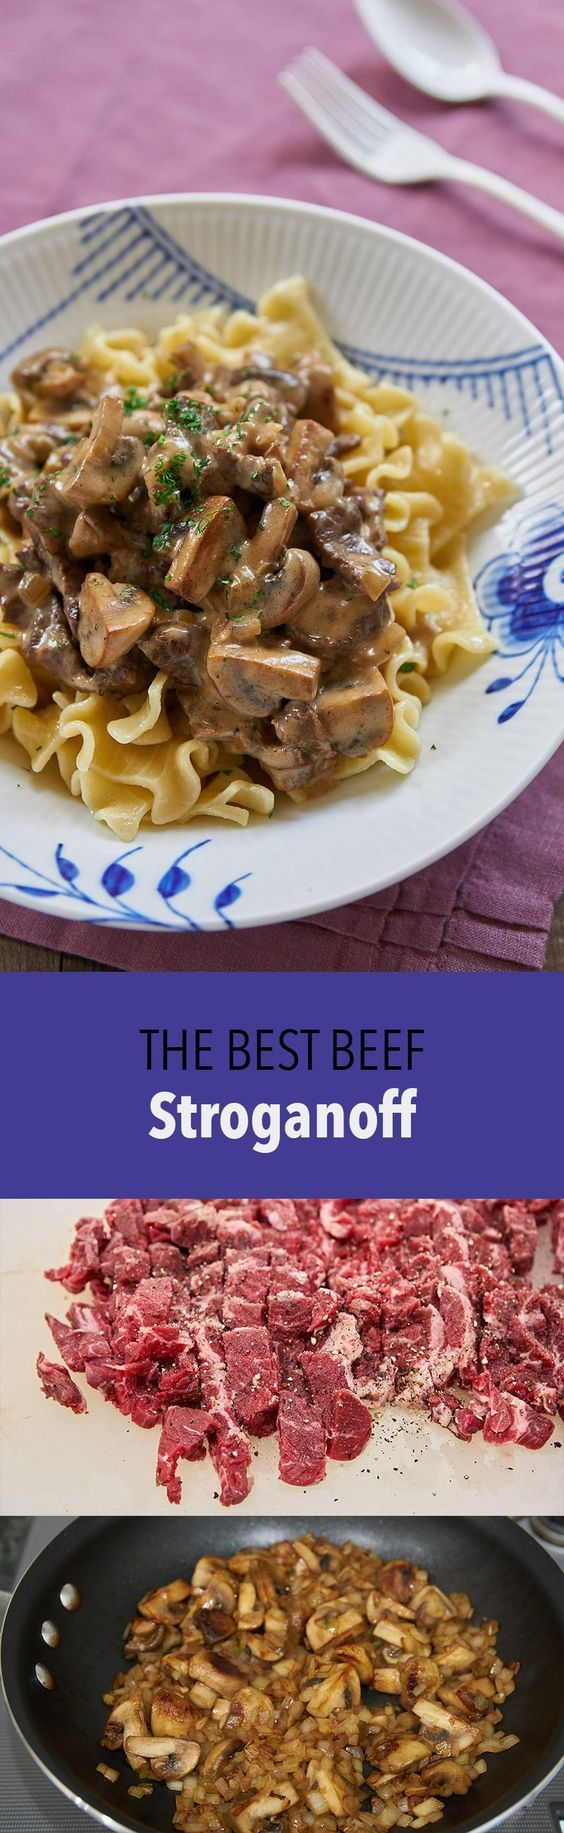 Beef Stroganoff is such an easy meal and yet it's flavorful and comforting. My secrets for making the best Stroganoff.